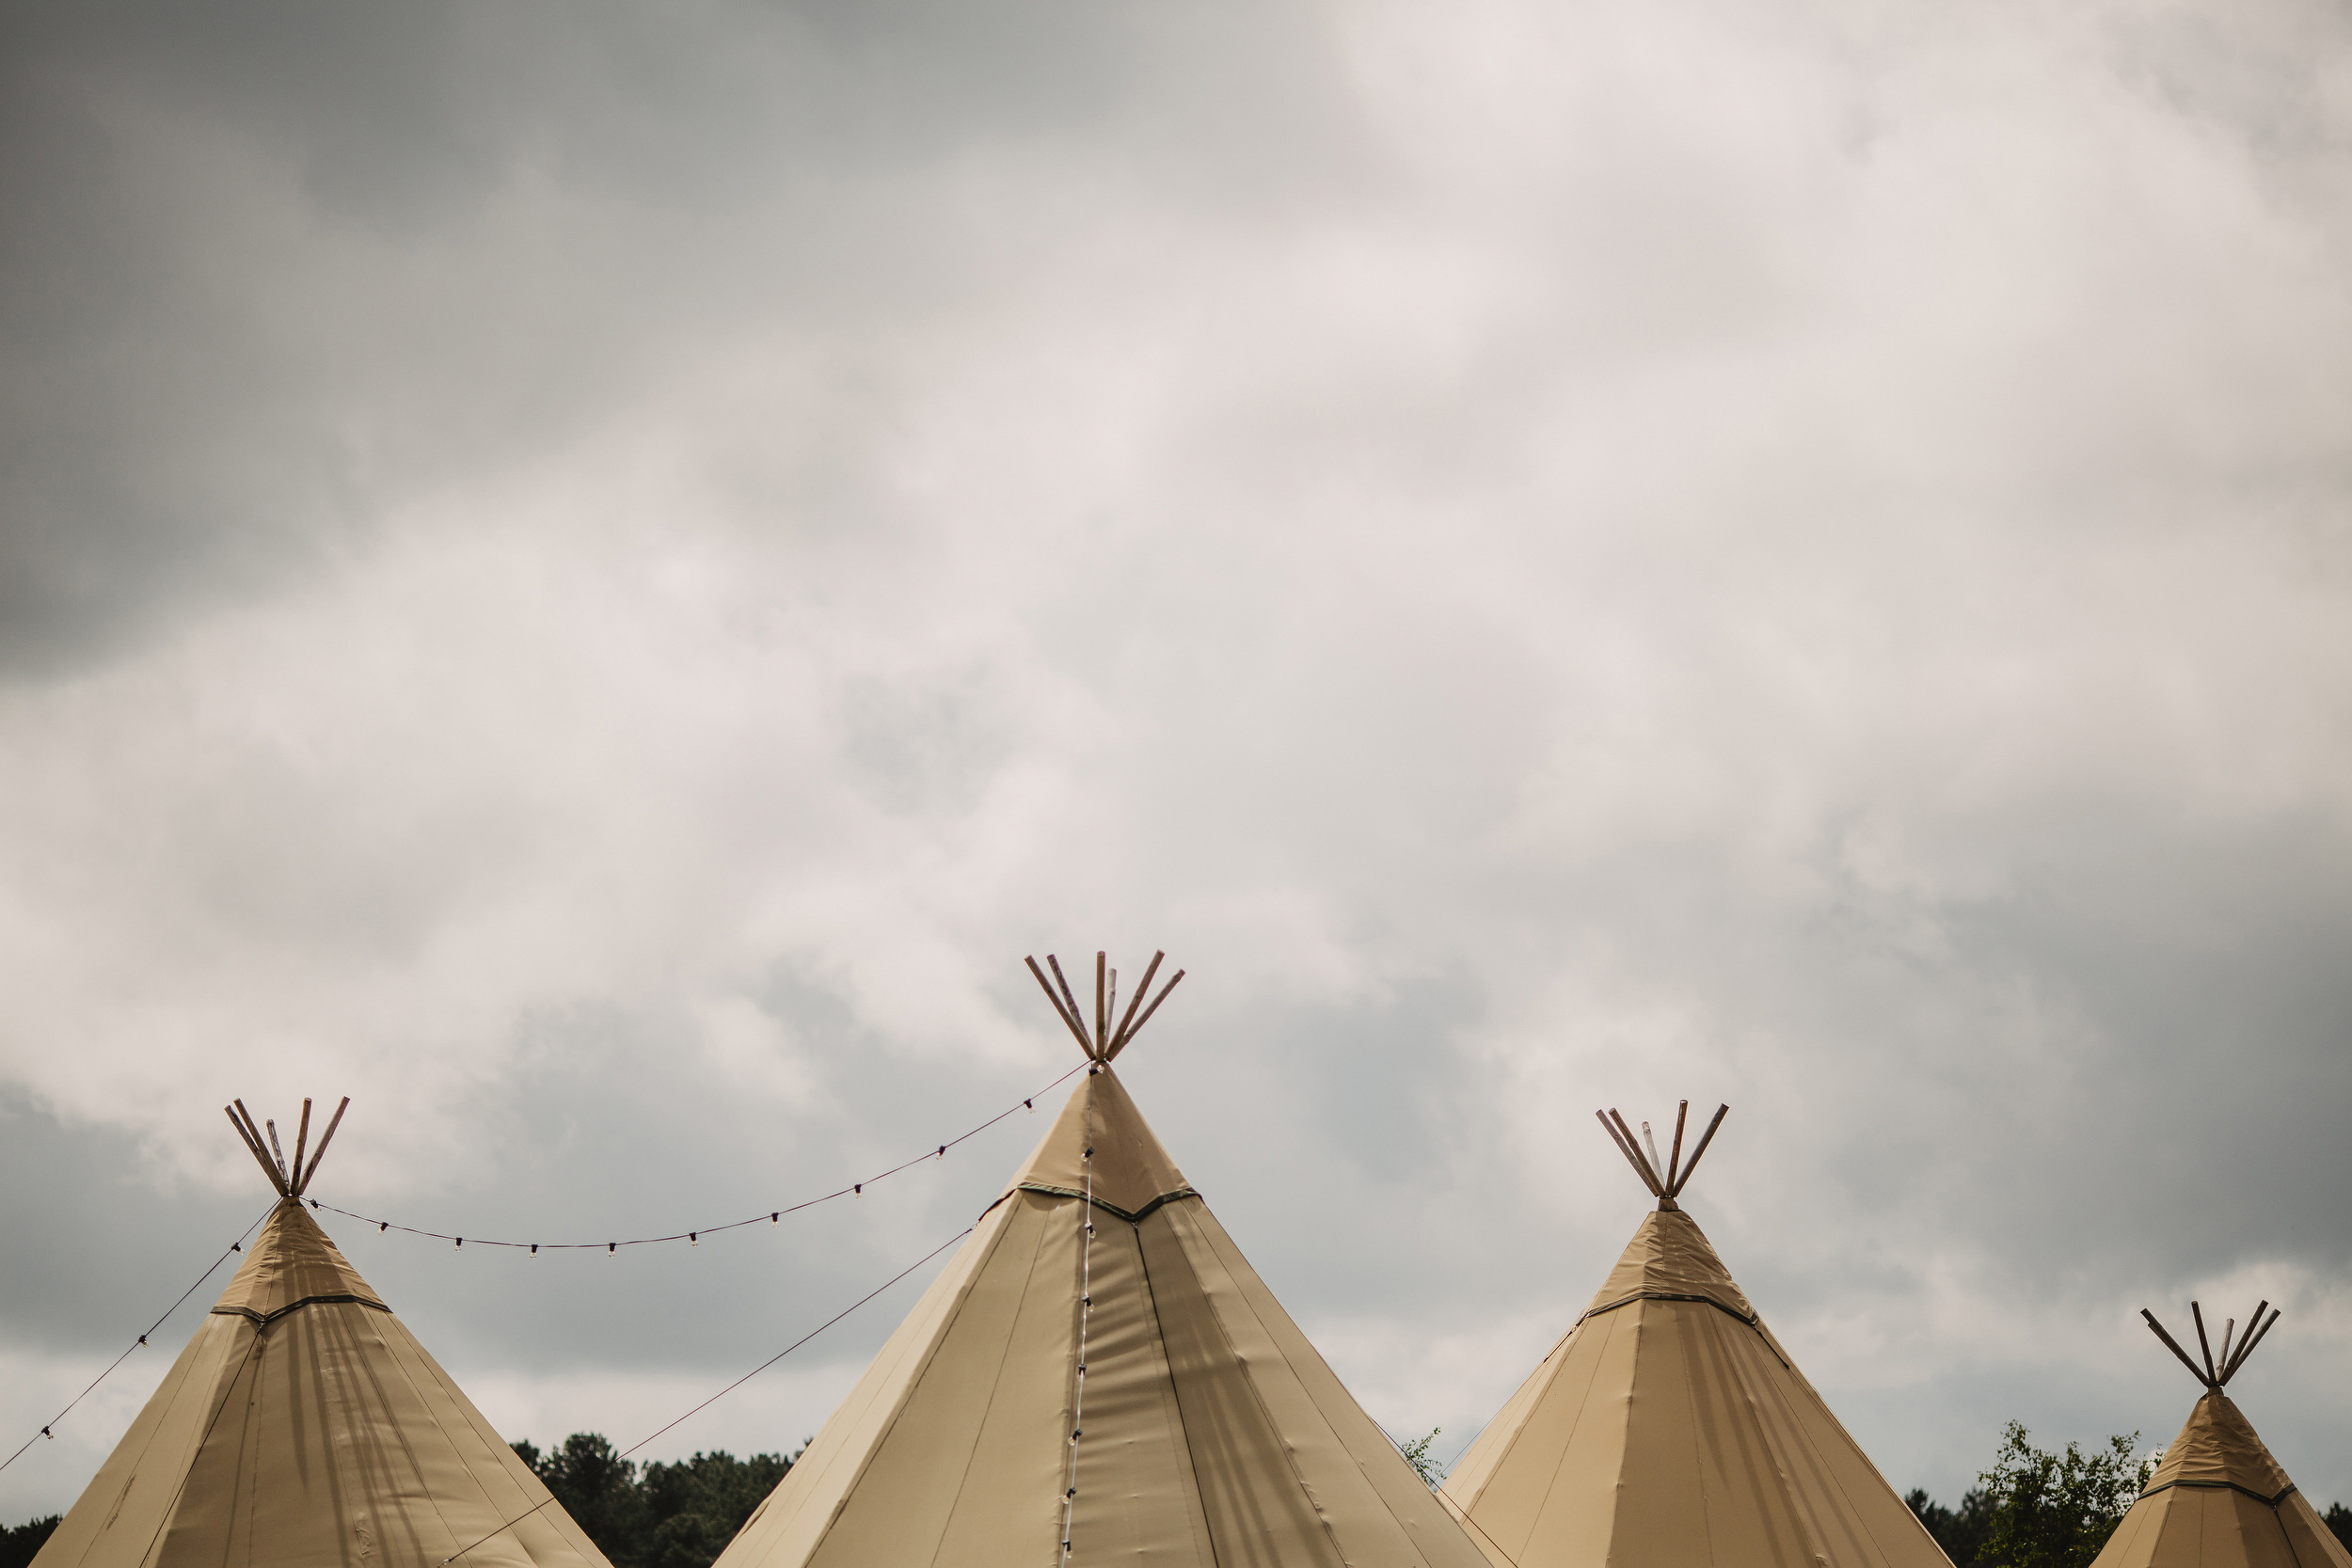 Gemma-Bohemian-Outdoor-Tipi-Wedding-Laid-Back-Relaxed-Family-Wedding-Kate-Beaumont-Astilbe-by-S6-Photography-Sheffield-6.jpg